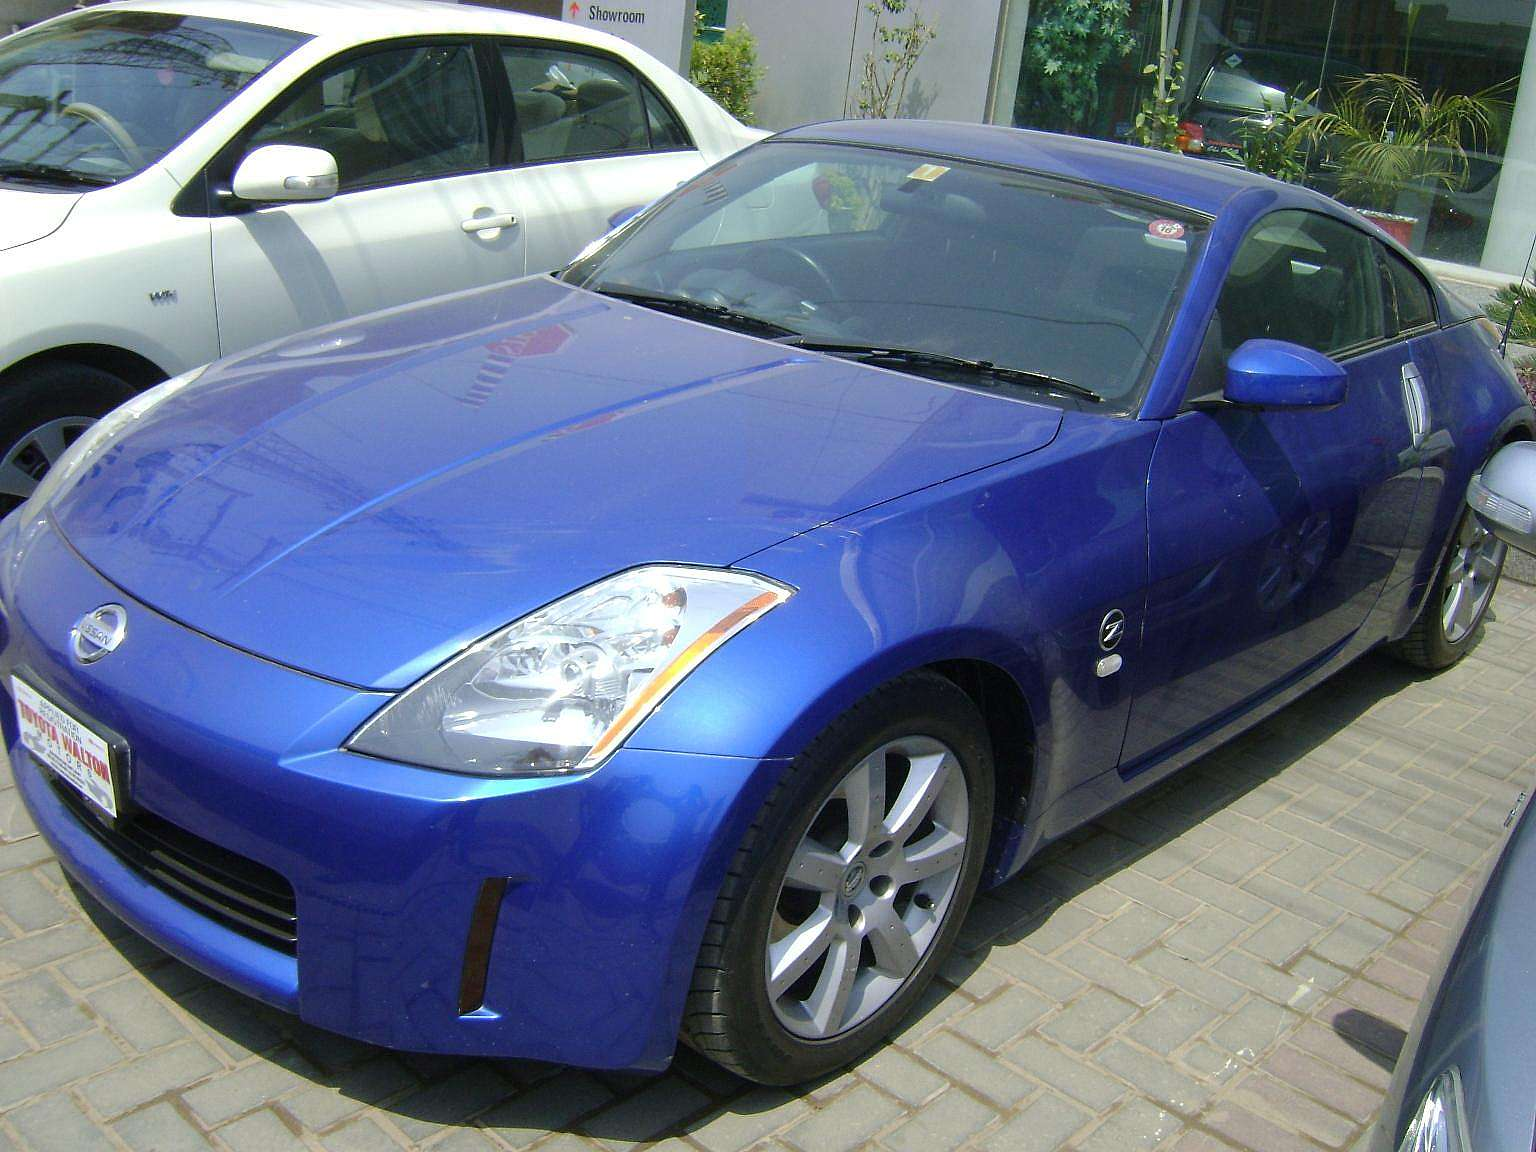 used 2003 nissan 350z for sale pakistan free classifieds muamat. Black Bedroom Furniture Sets. Home Design Ideas